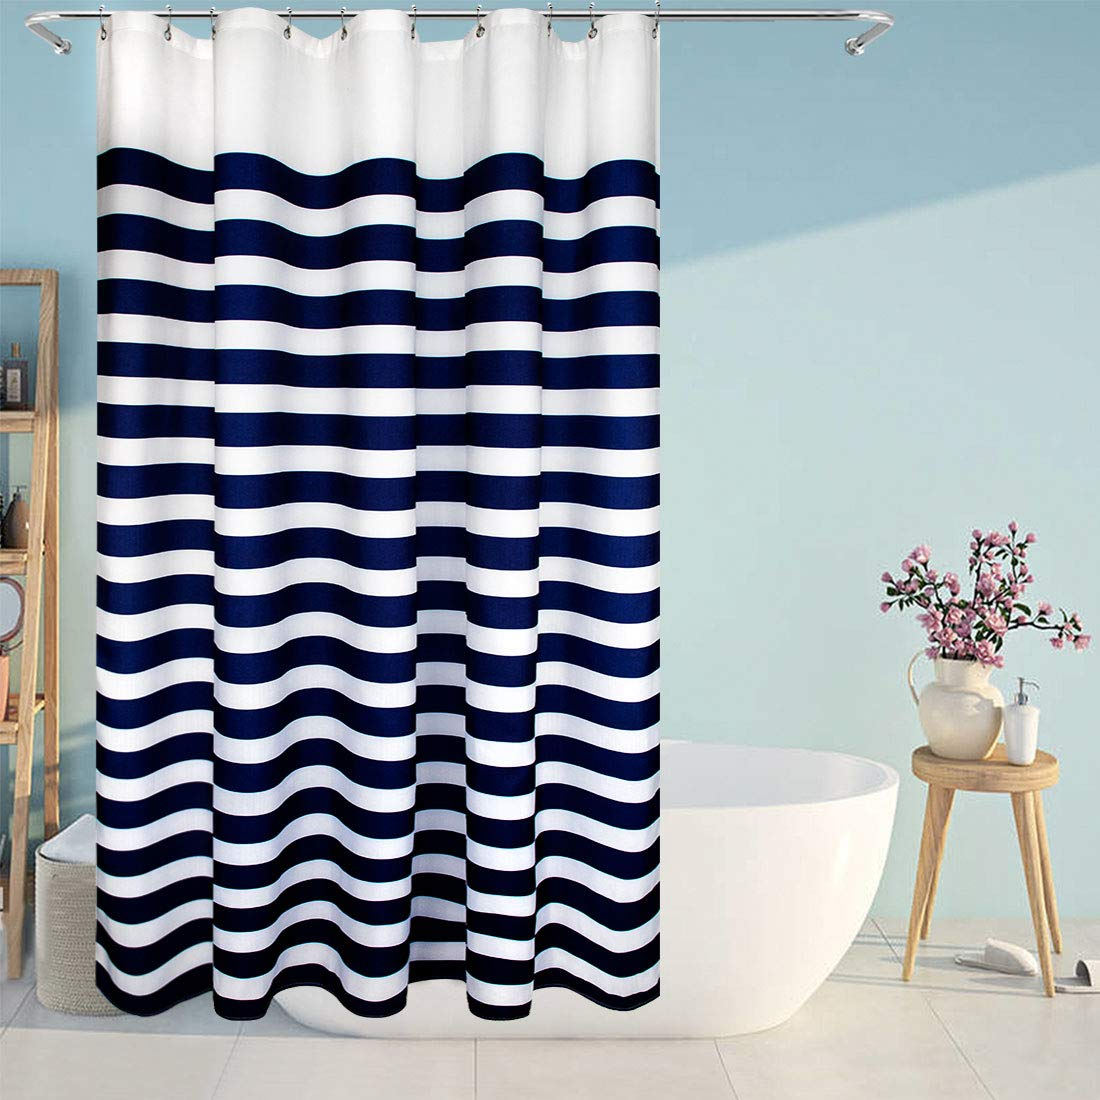 Eforcurtain Nautical Stripes Mildew Proof Water-Repellent Fabric Shower Curtain,Navy and White, Stall Size 54 by 78-inch Extra Long